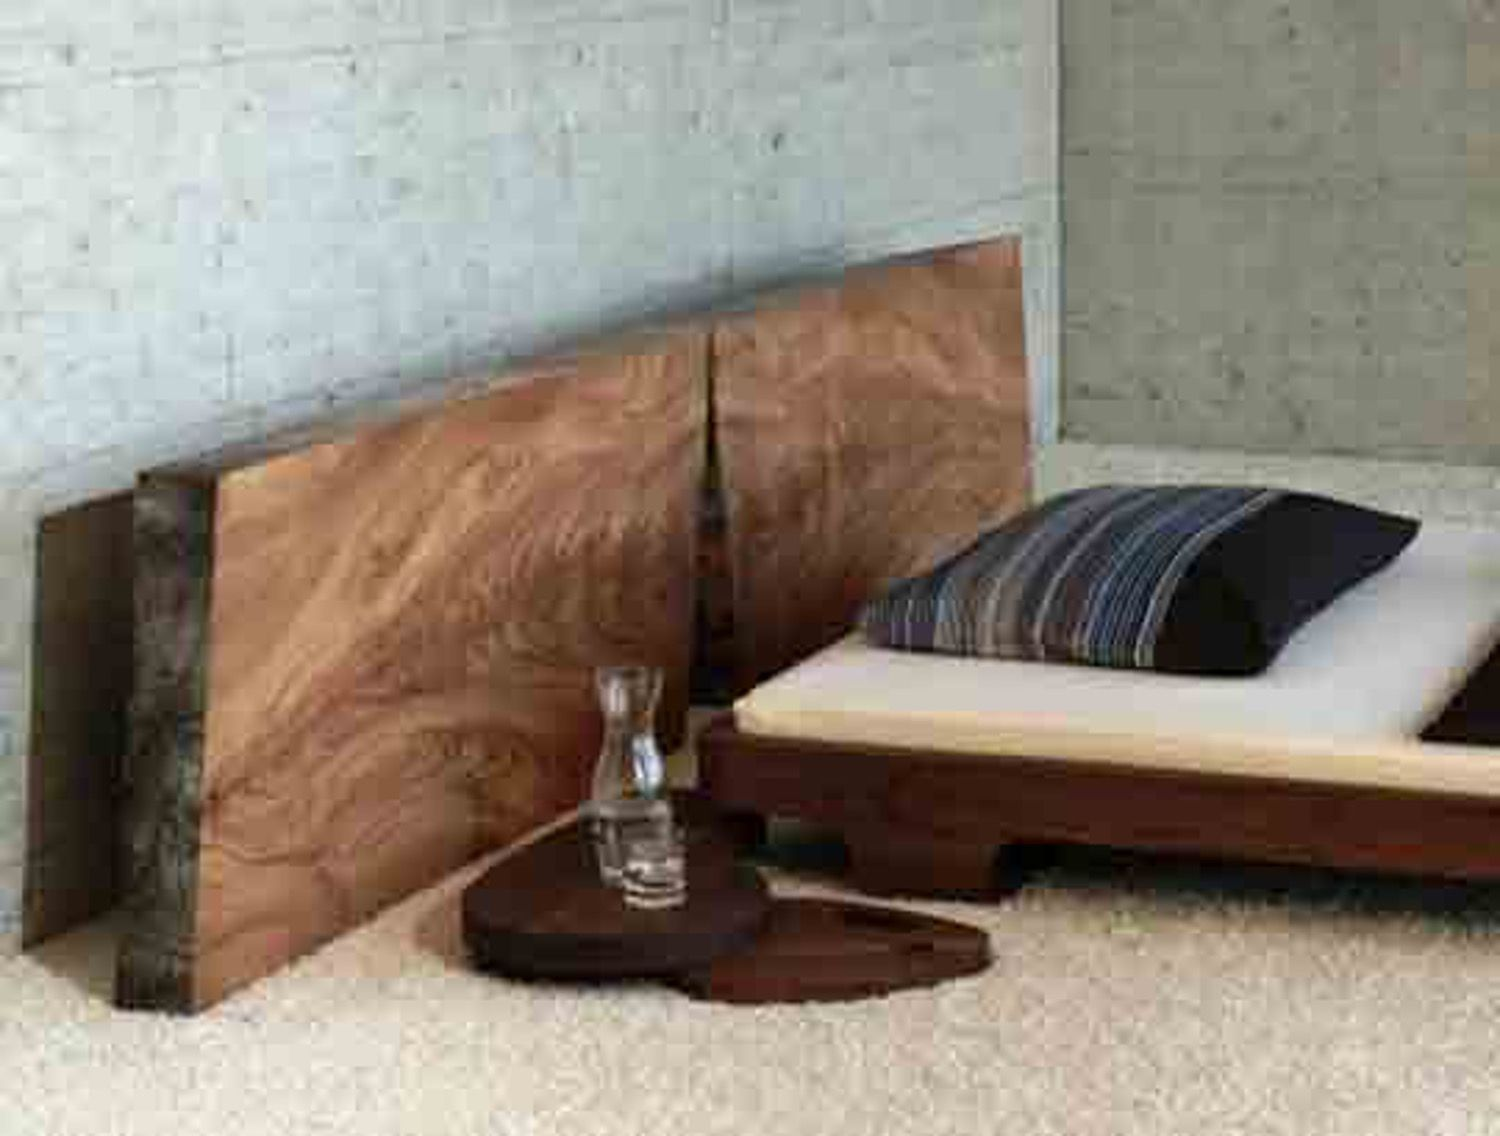 Solid Wood Beds by Ign Design   Wood beds, Solid wood and Woods